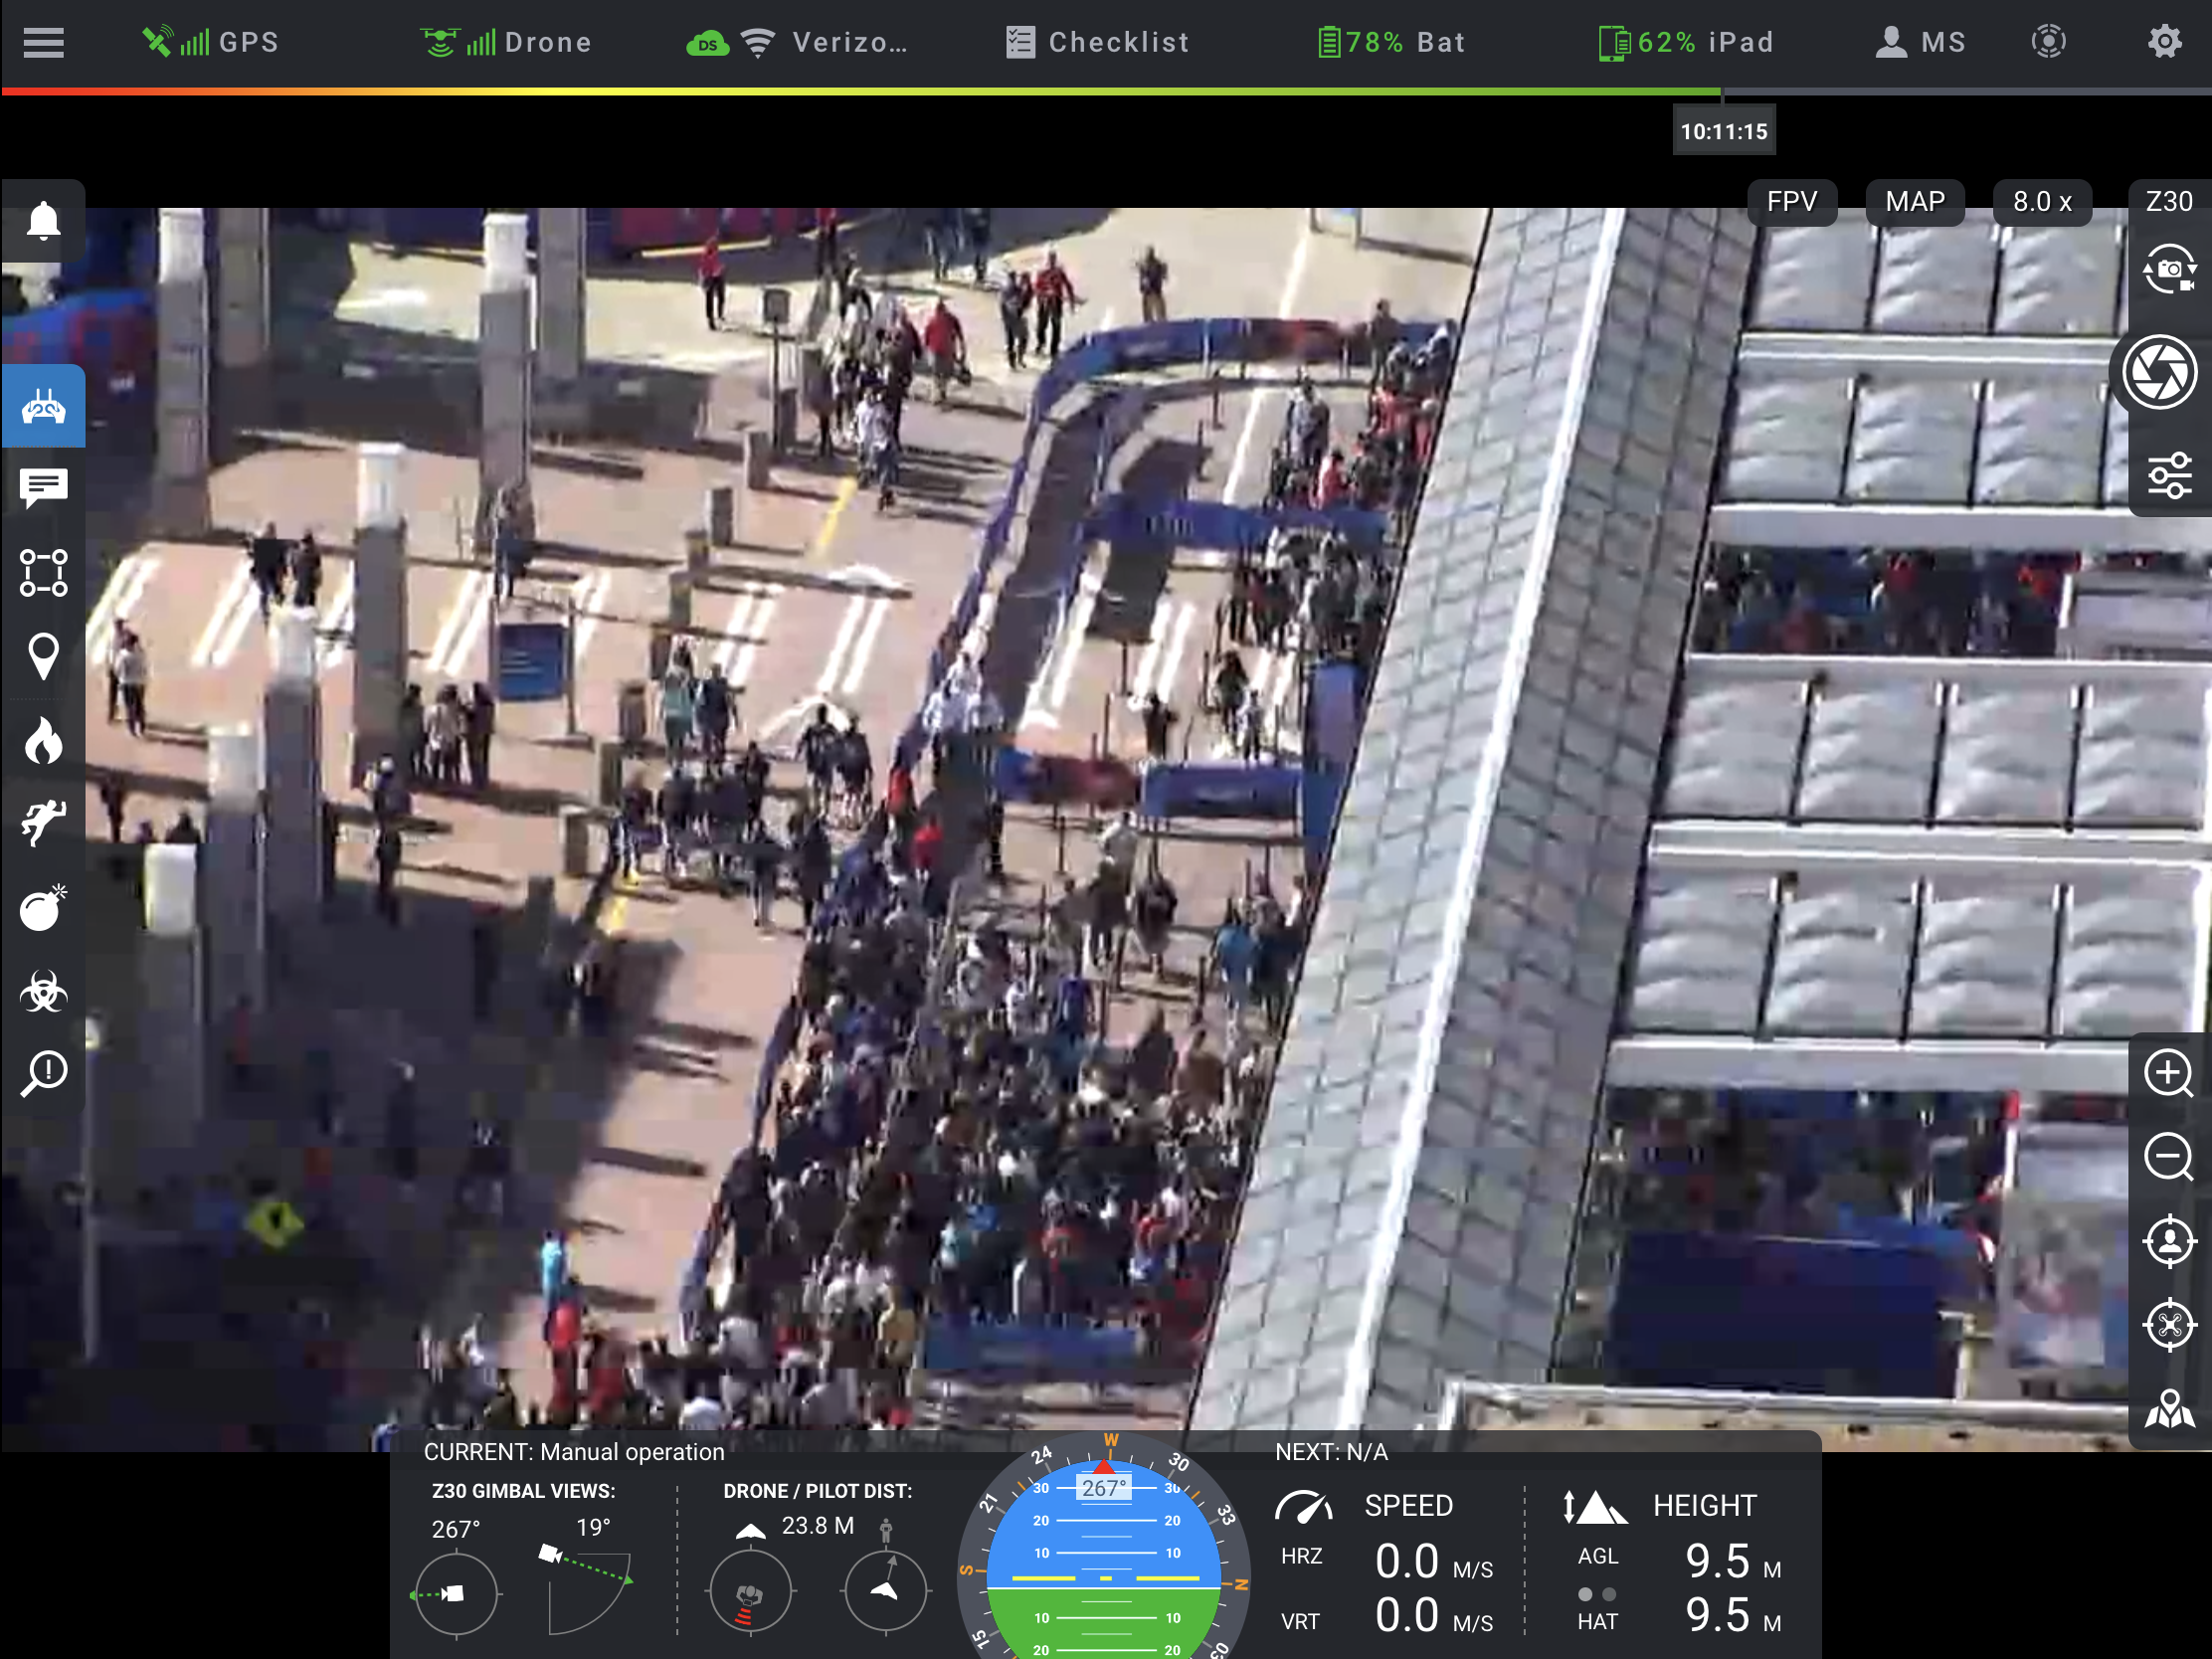 Zenmuse Z30 camera zooming in on crowd in the Super Bowl village in Centennial Olympic Park.